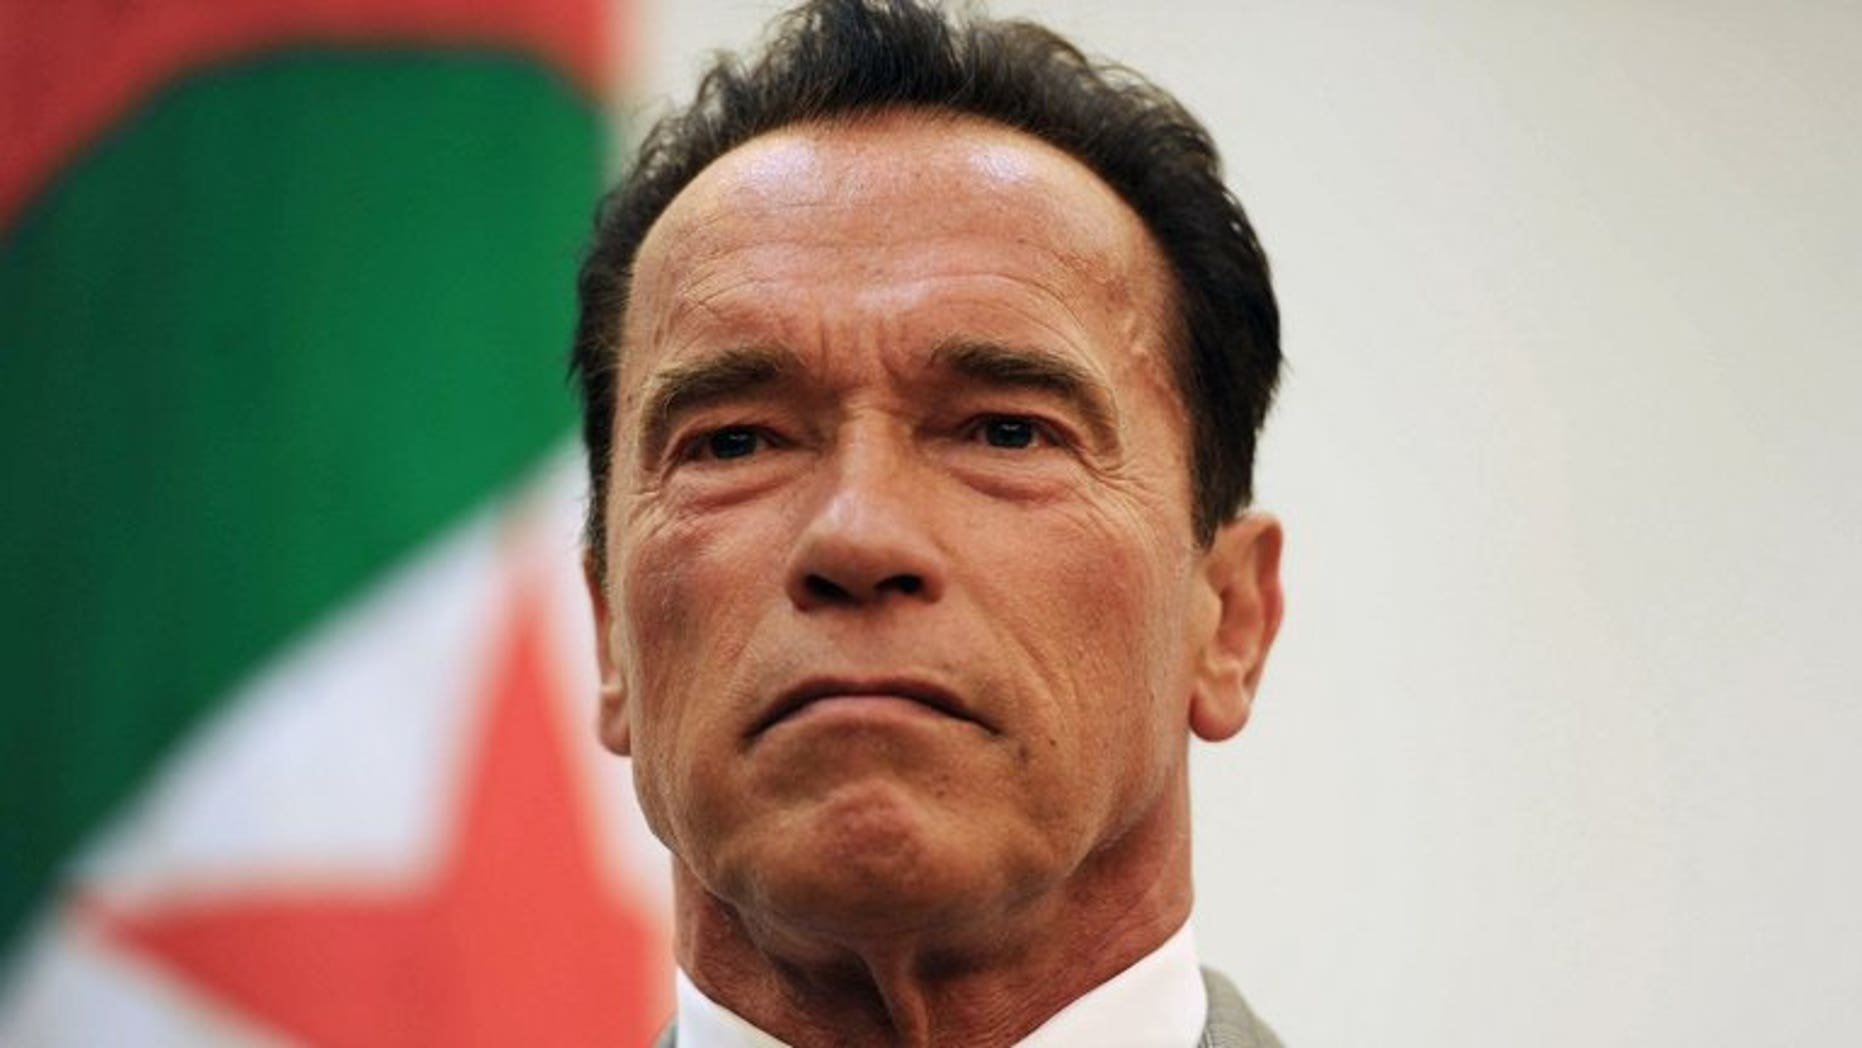 """Arnold Schwarzenegger attends a press conference in Algiers on June 25, 2013. US actor and former California governor Schwarzenegger vowed in Algeria on Tuesday to press his bid to """"terminate"""" threats to the environment through his climate action campaign."""